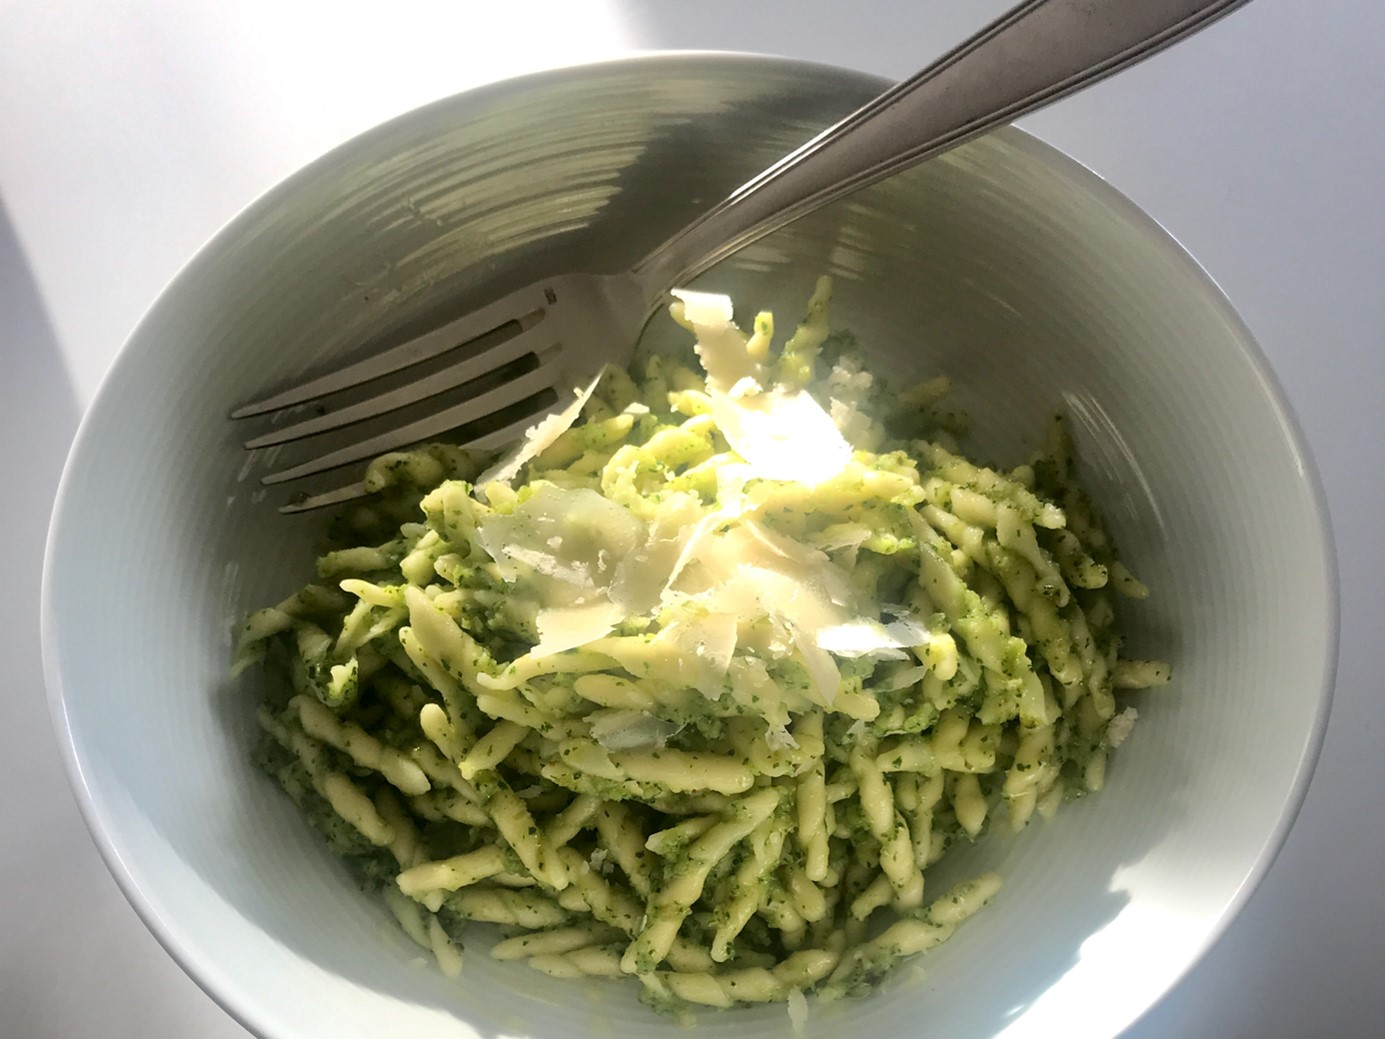 One pesto at a time